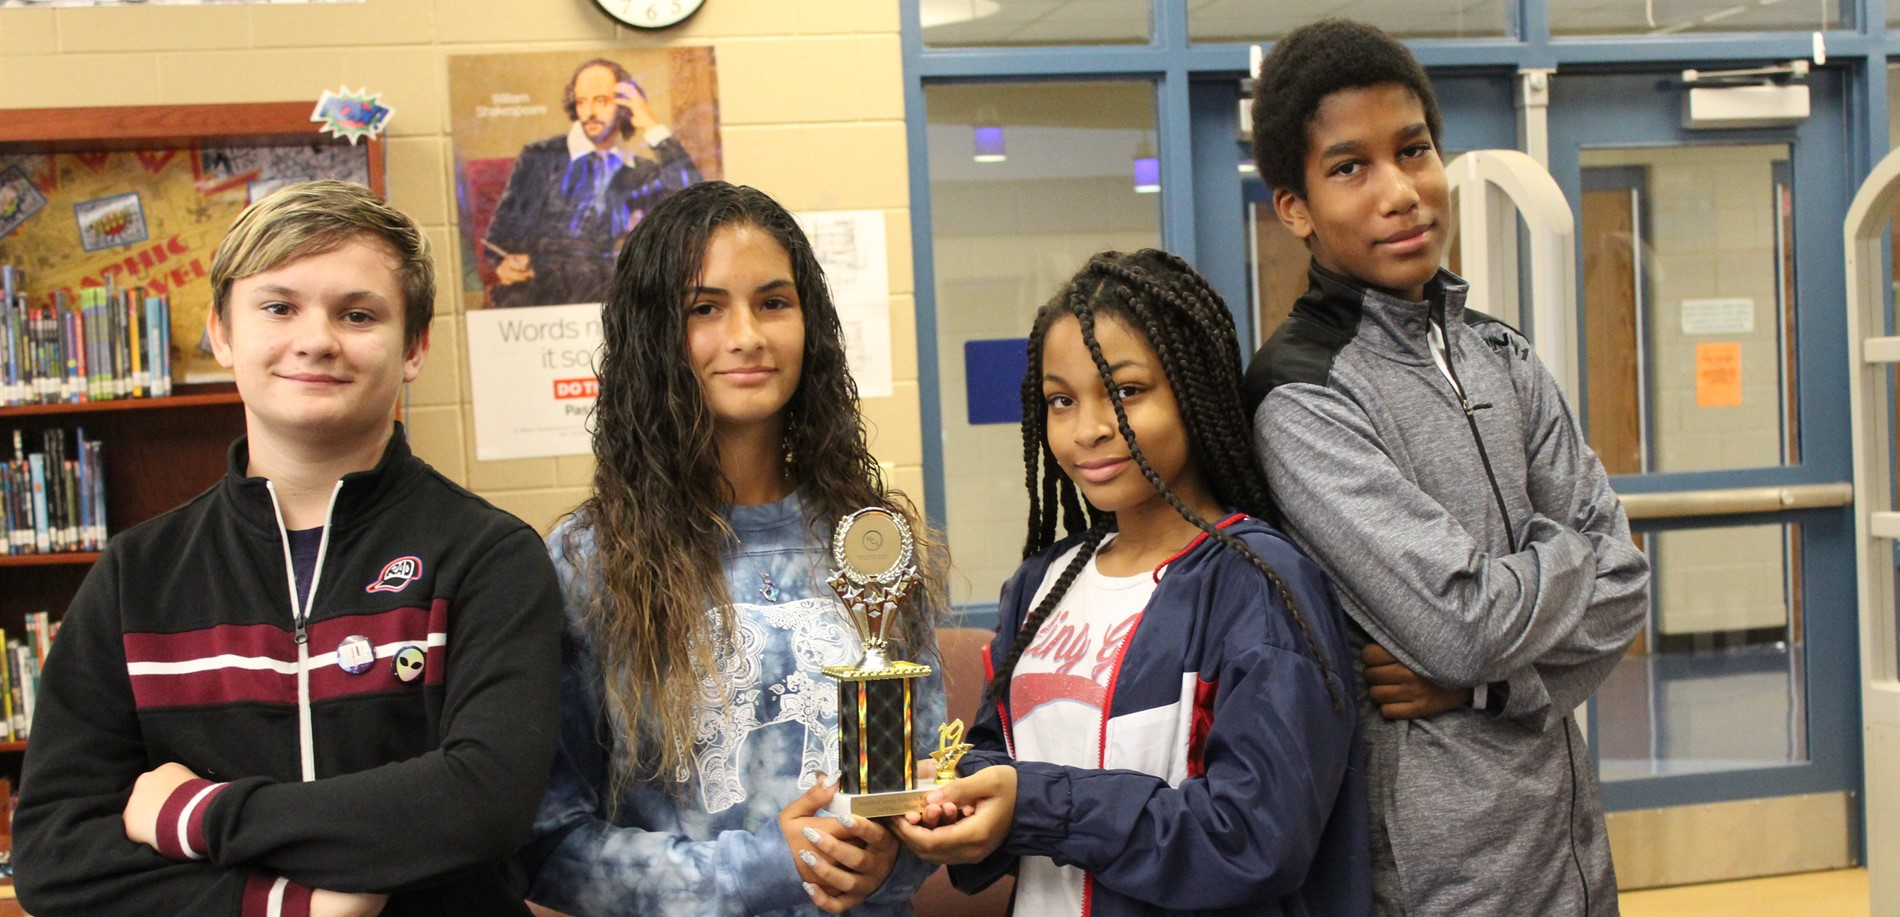 The SuperNova Superstars (Gabe Cooper, Olivia Maldonado, Christen Lett, and Kenneth Richie) won 3rd place (out of 28 teams) in the teamwork division of the HCS Lego Robotics Competition!